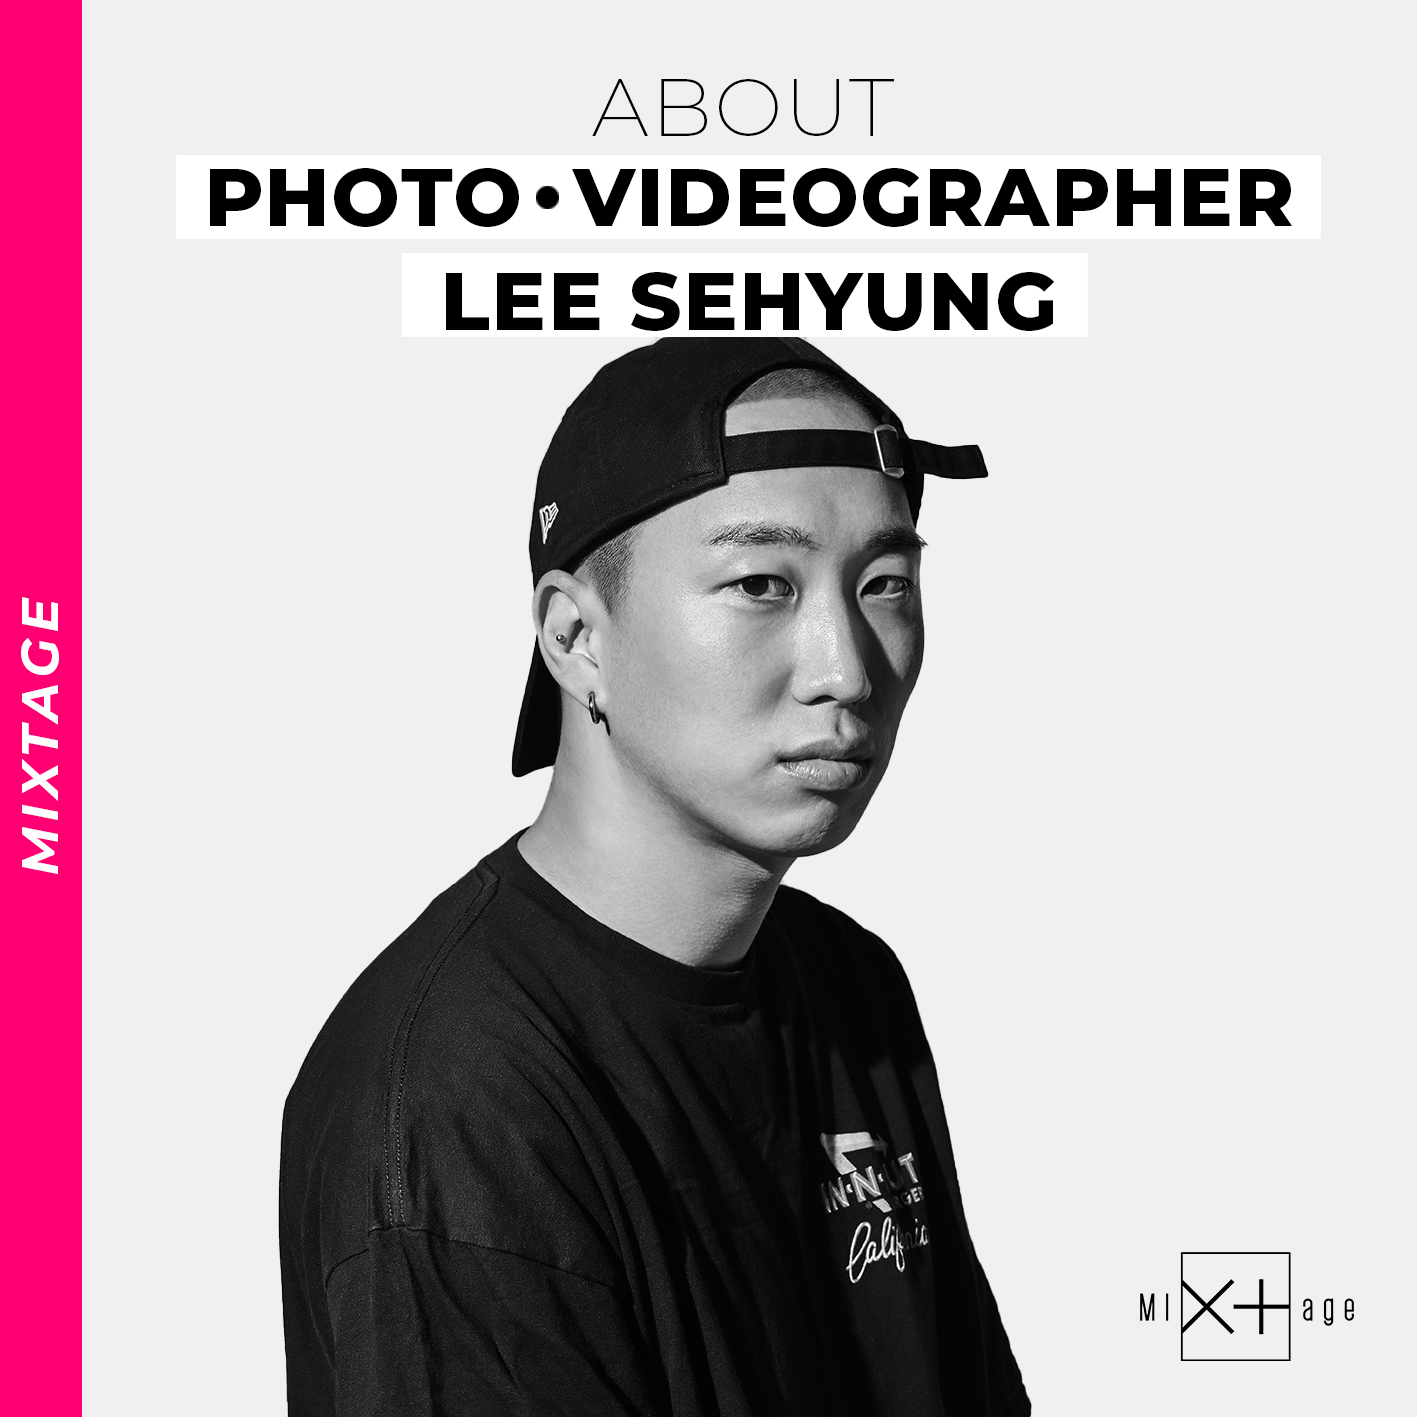 [Mixtage] about LEE SEHYUNG